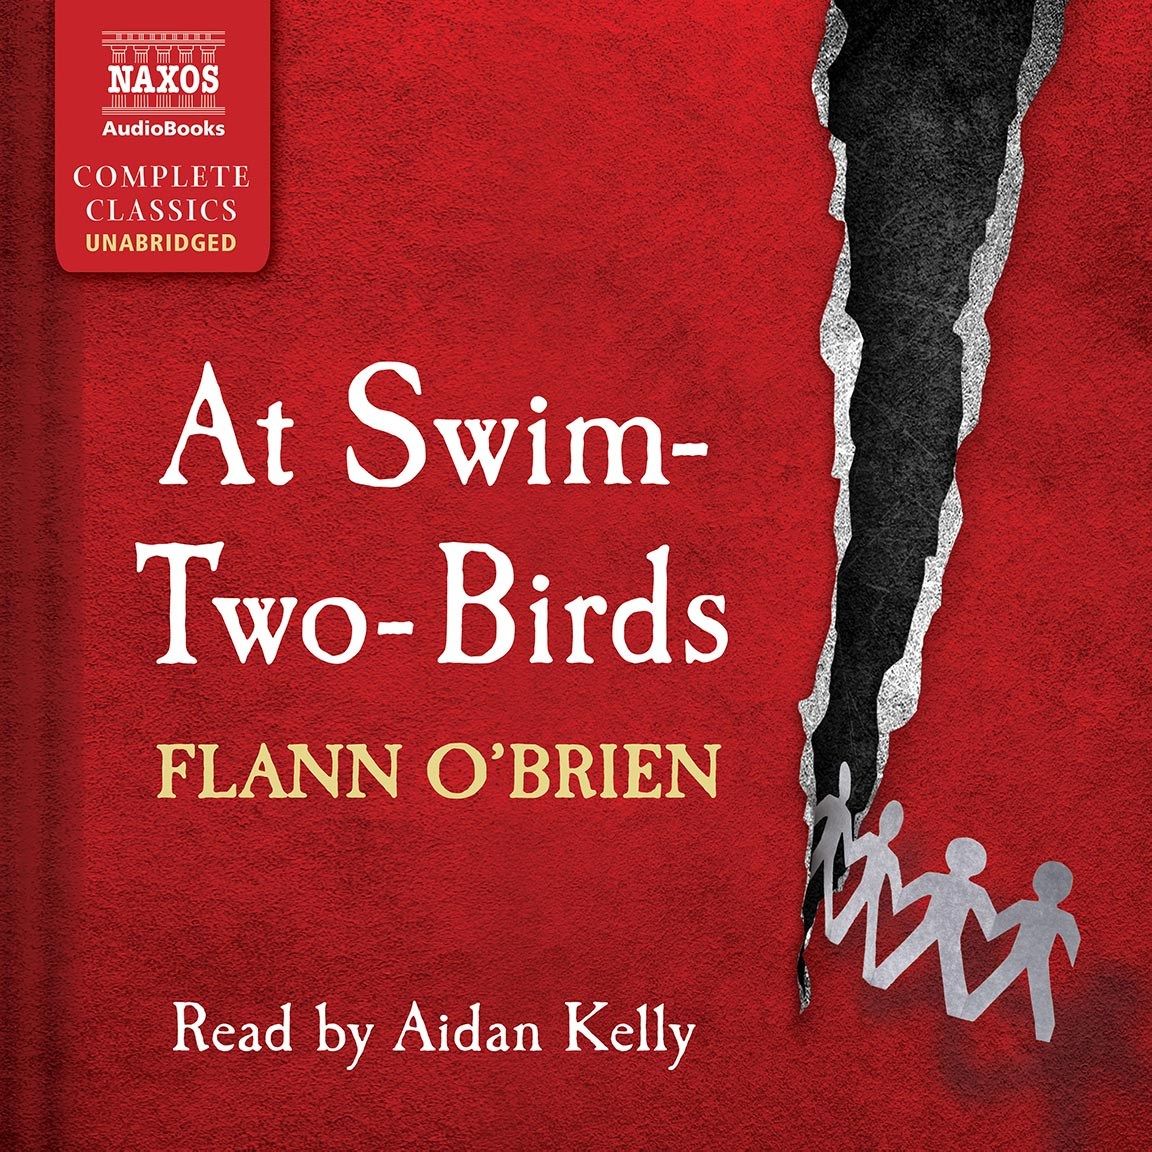 At Swim-Two-Birds (unabridged)